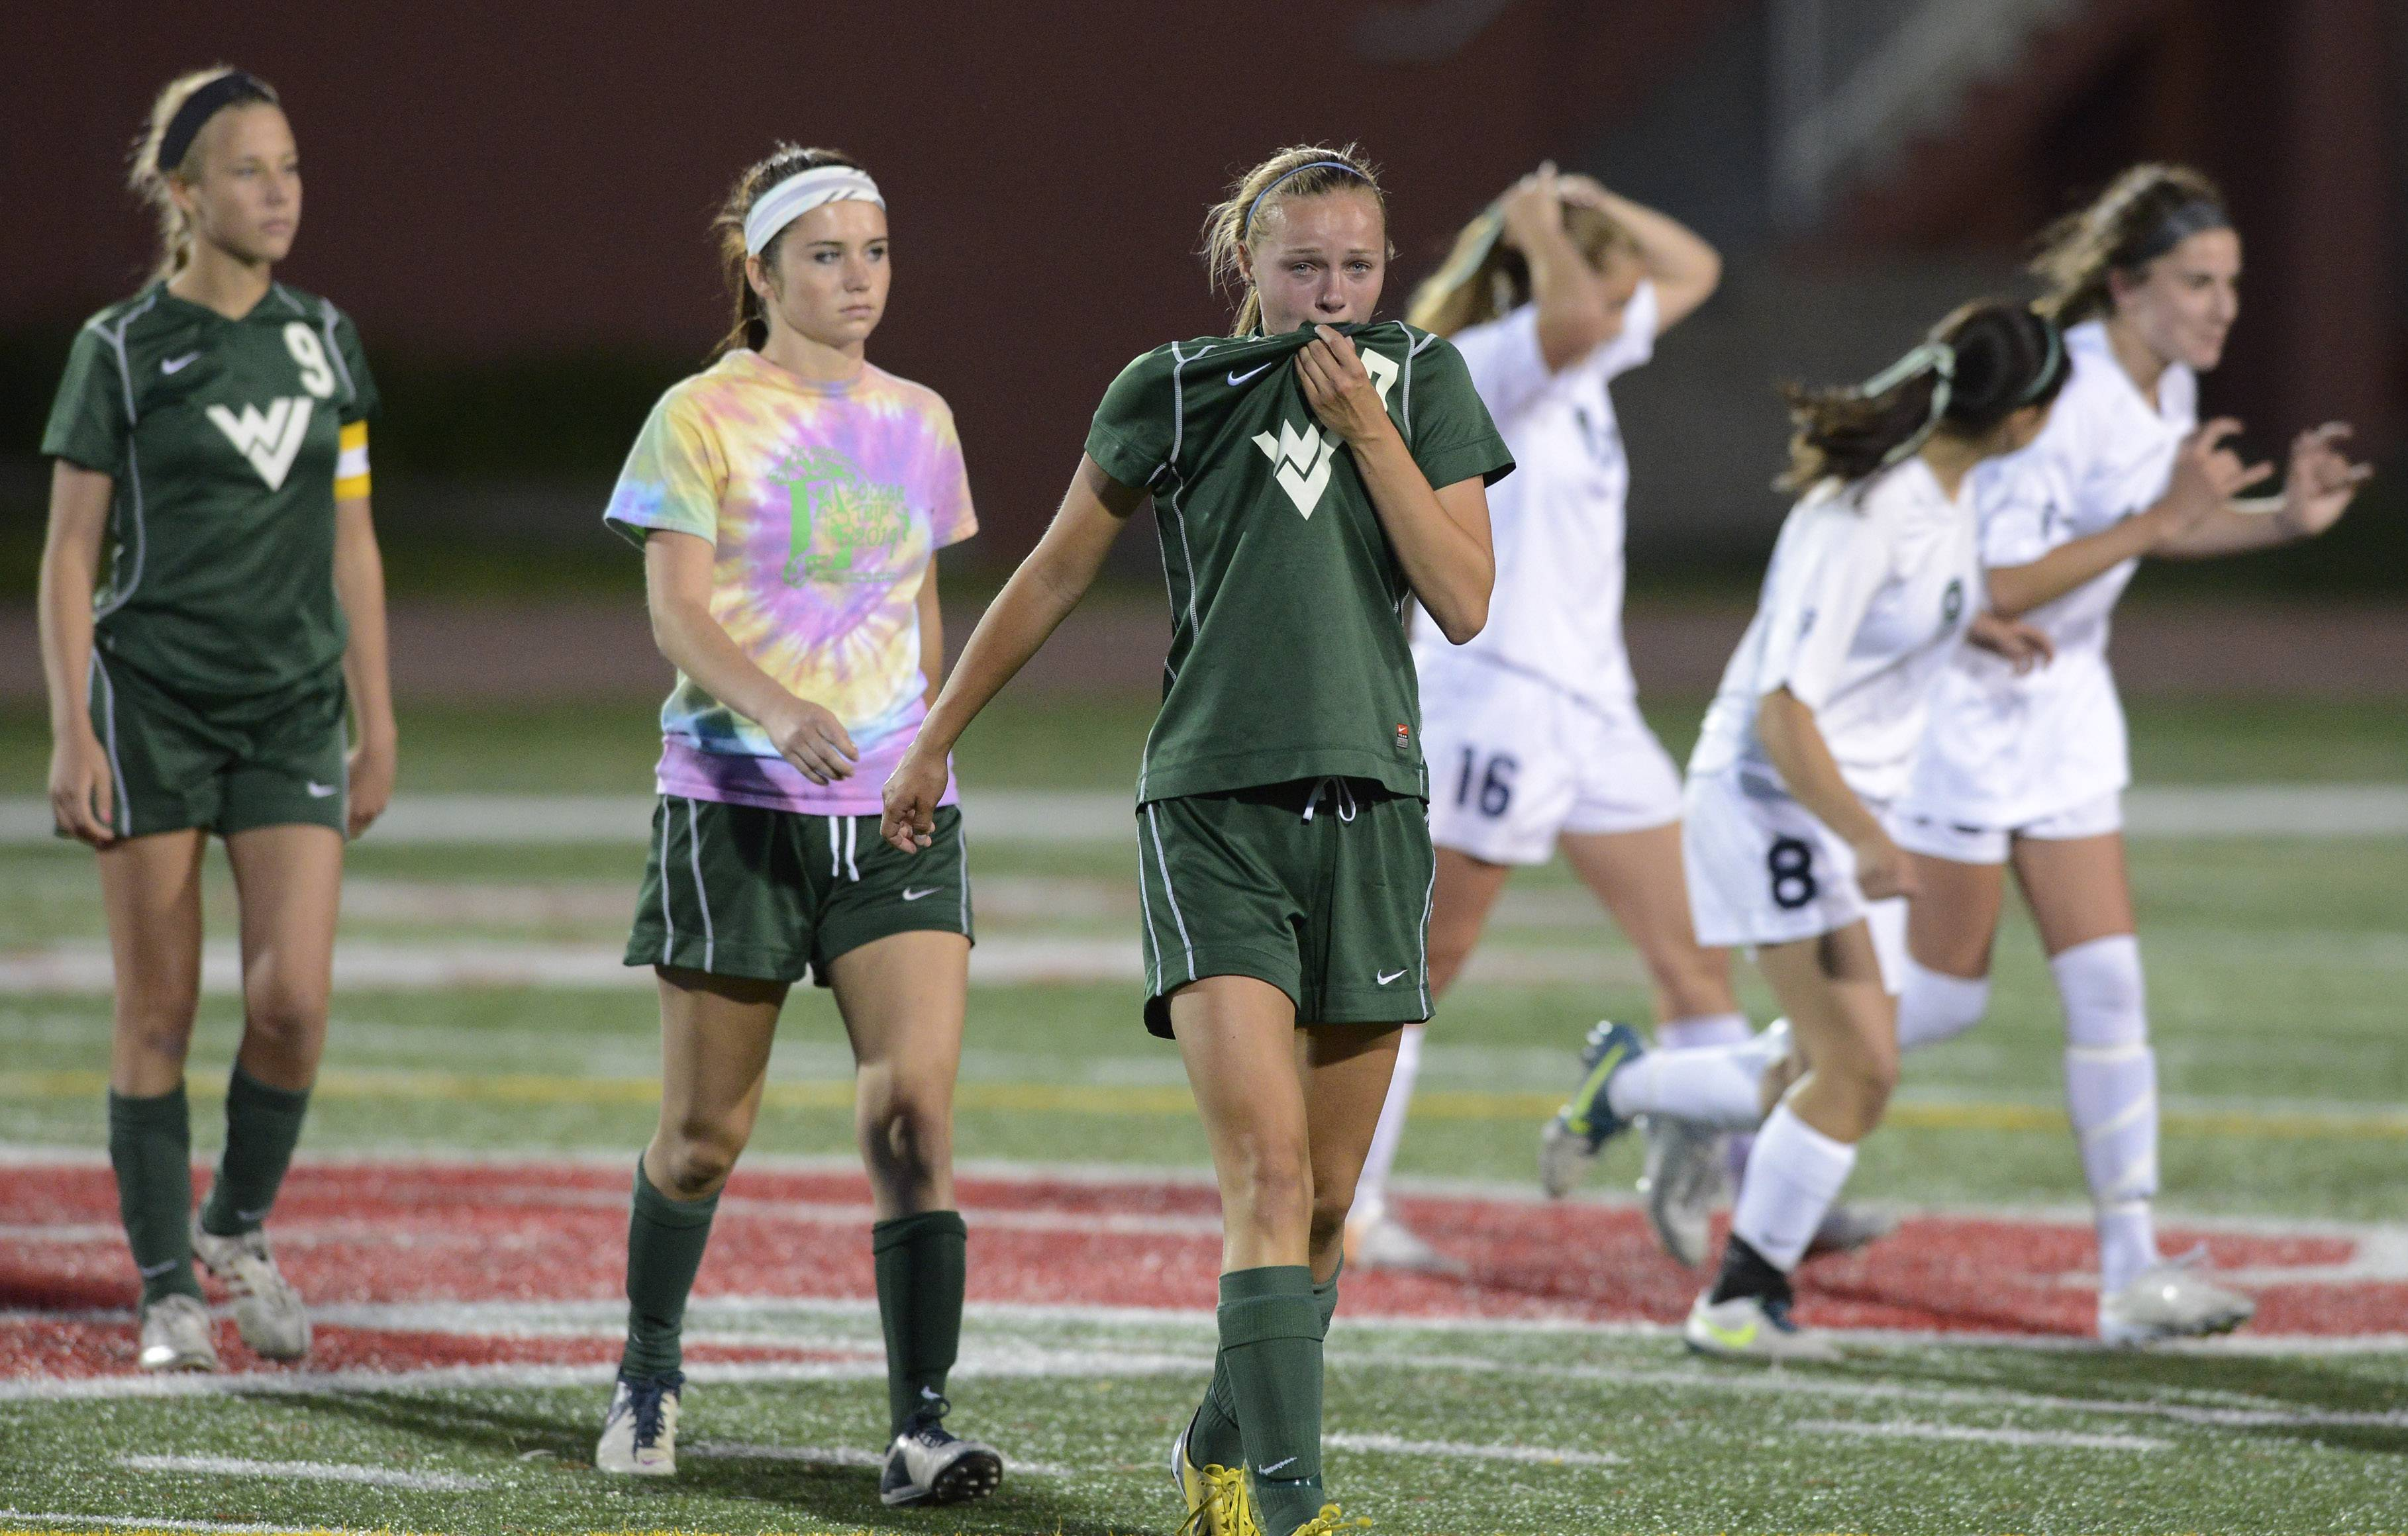 Maddie Pokora, middle, walks off the field with her teammates as New Trier celebrates its 1-0 win during the girls soccer Class 3A state semifinal at North Central College in Naperville Friday.